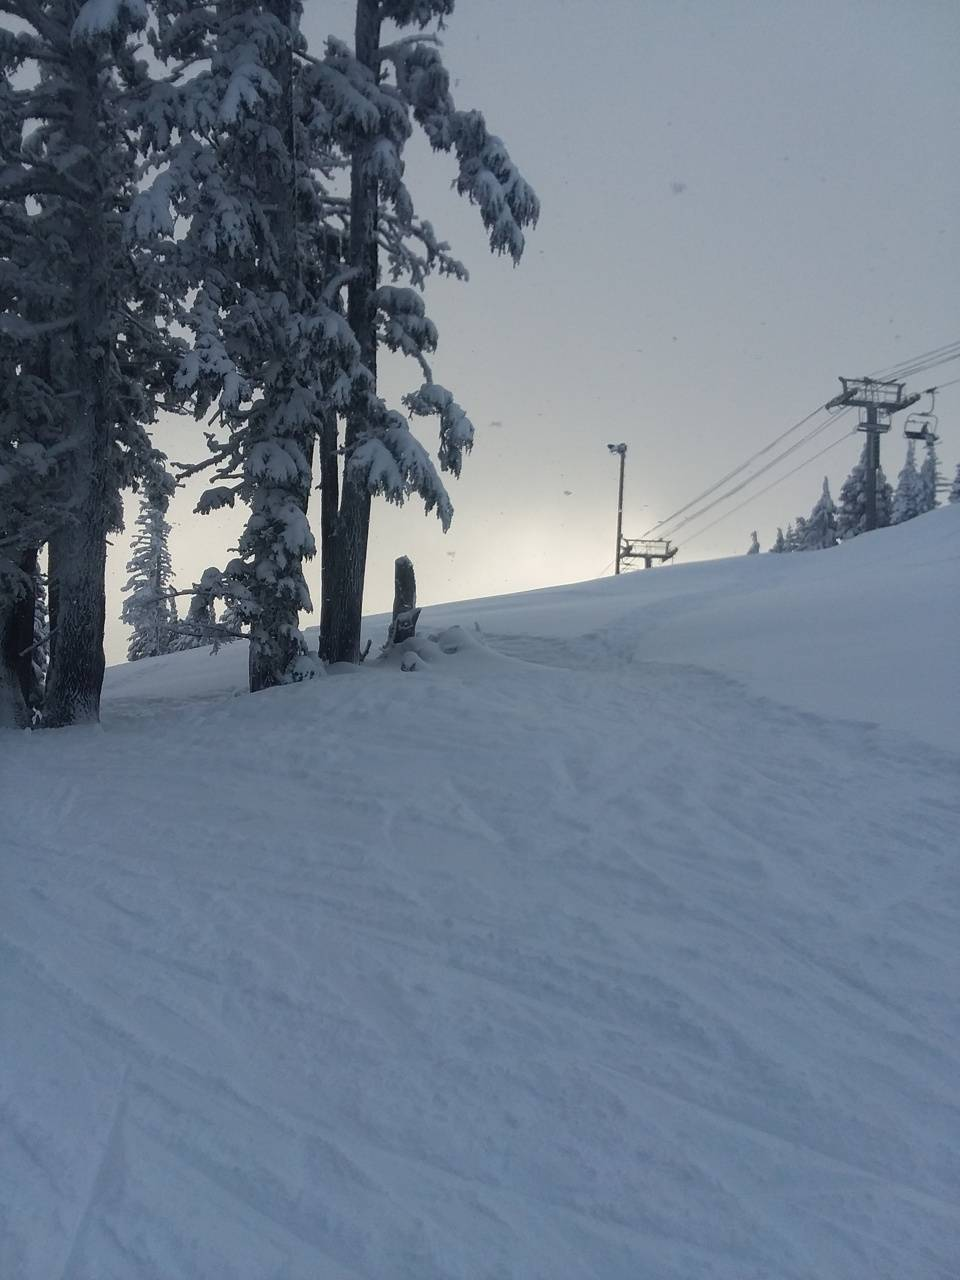 Skiing on mt Hood